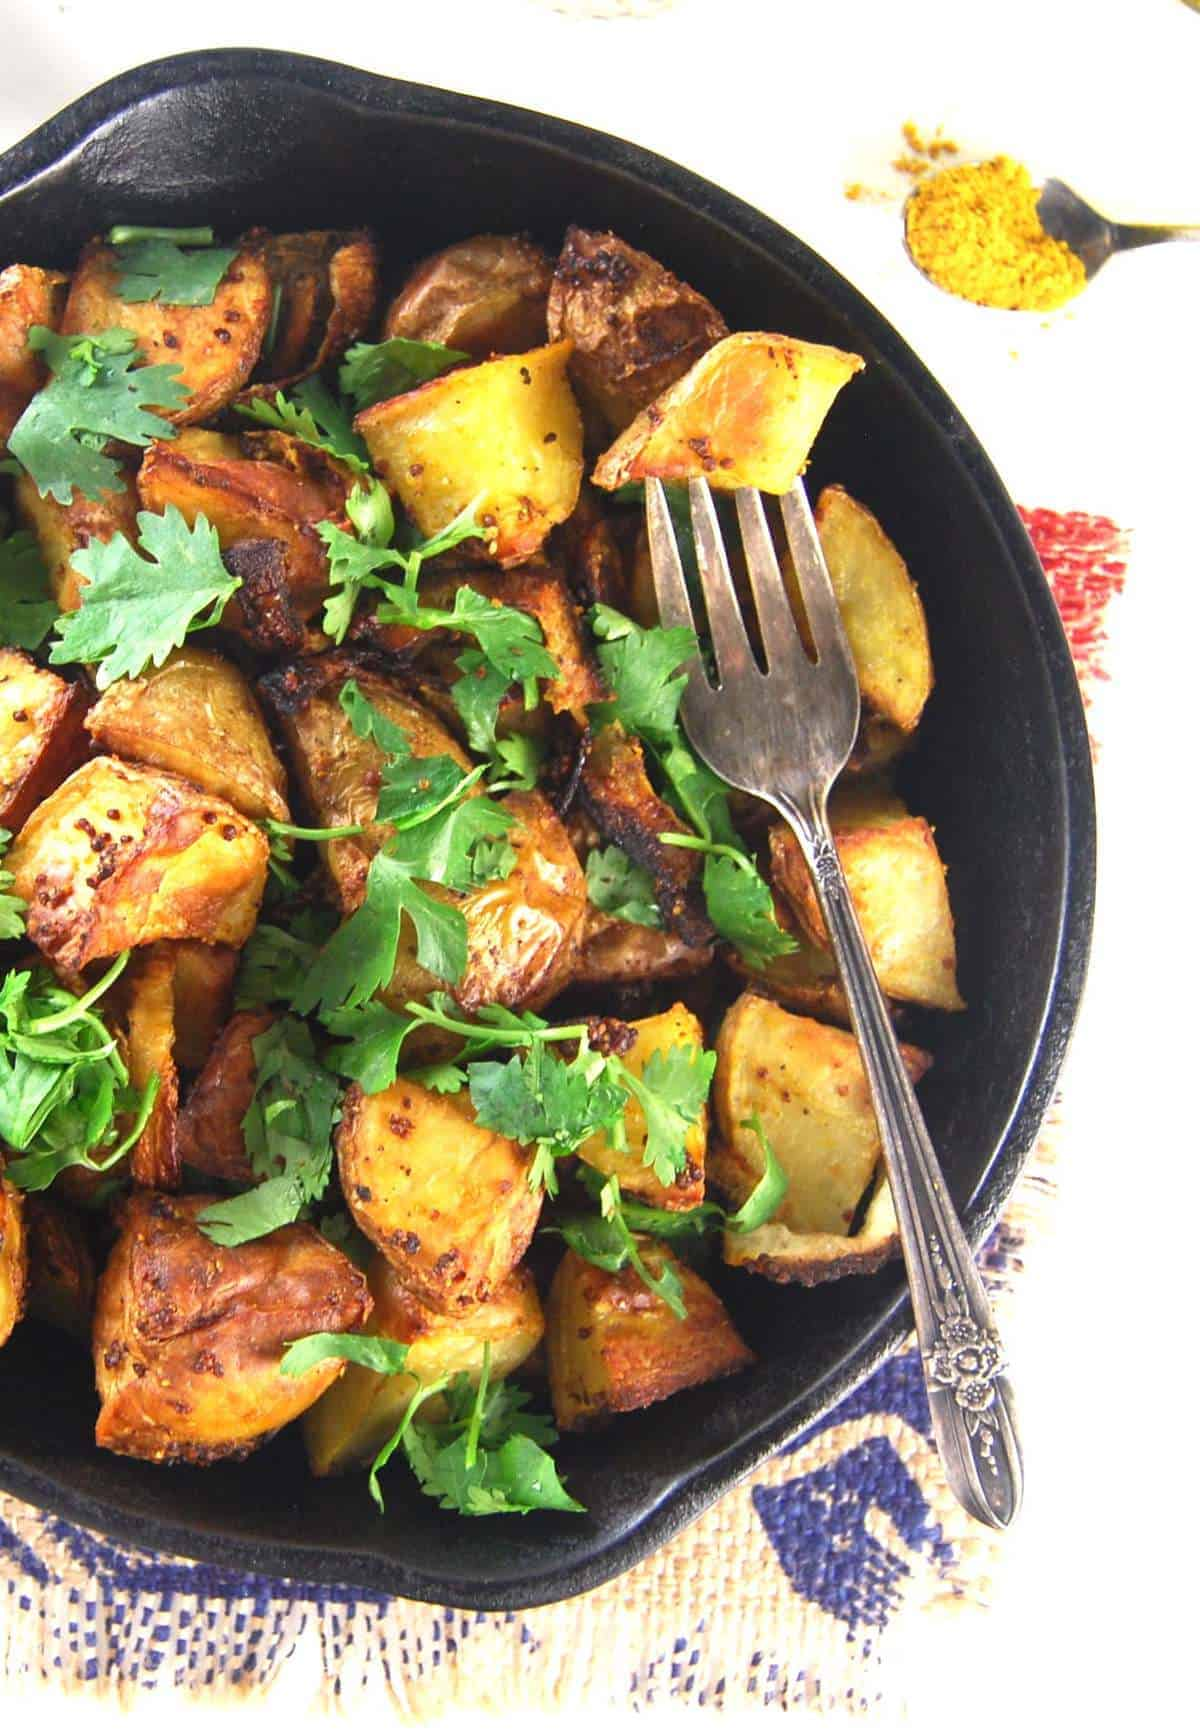 Golden Roasted Curry Mustard Potatoes in a cast iron pan with fork and curry powder in a spoon.